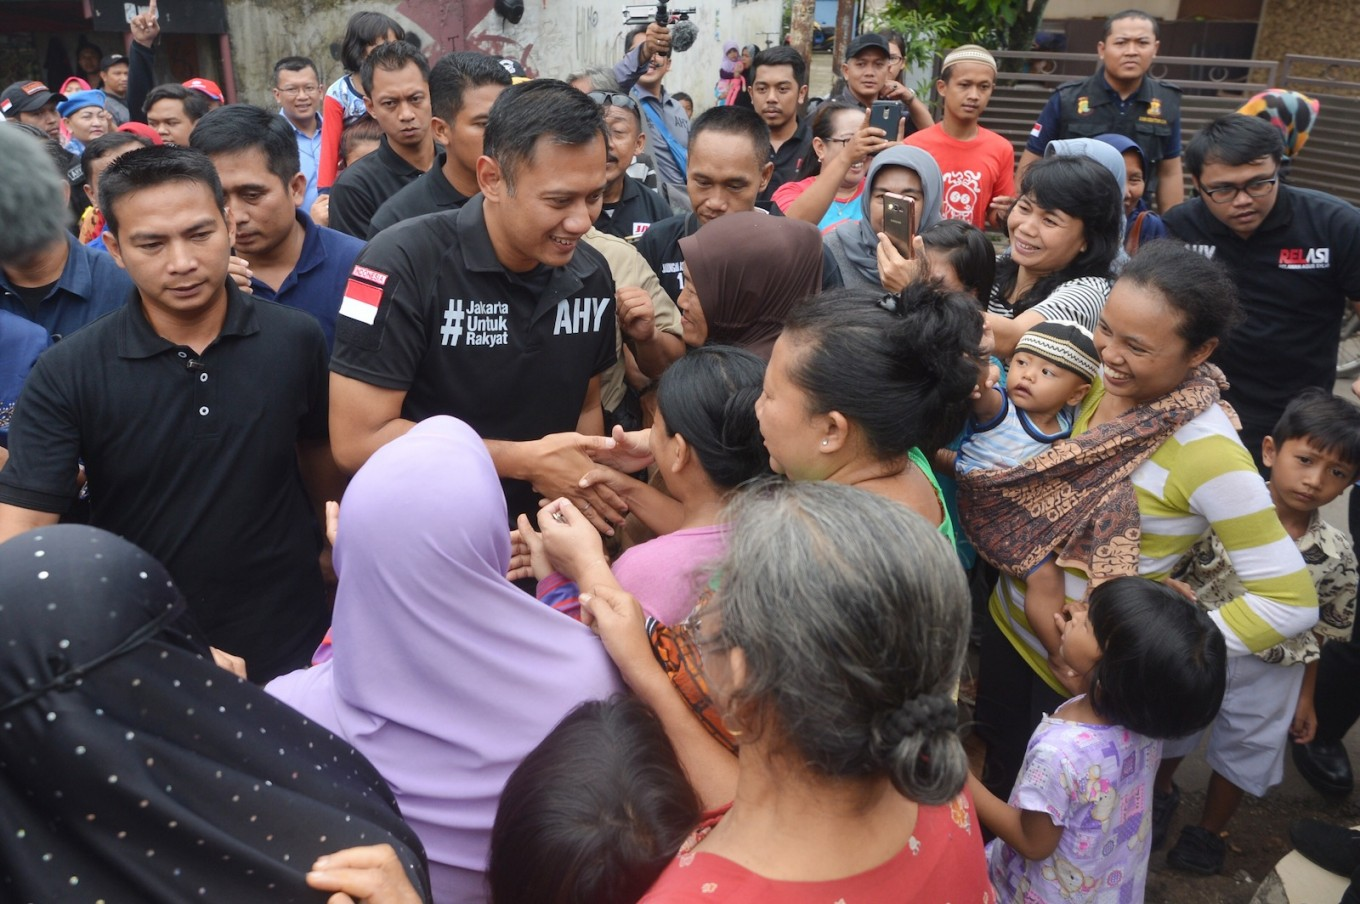 Agus promises more absorption wells to mitigate flooding